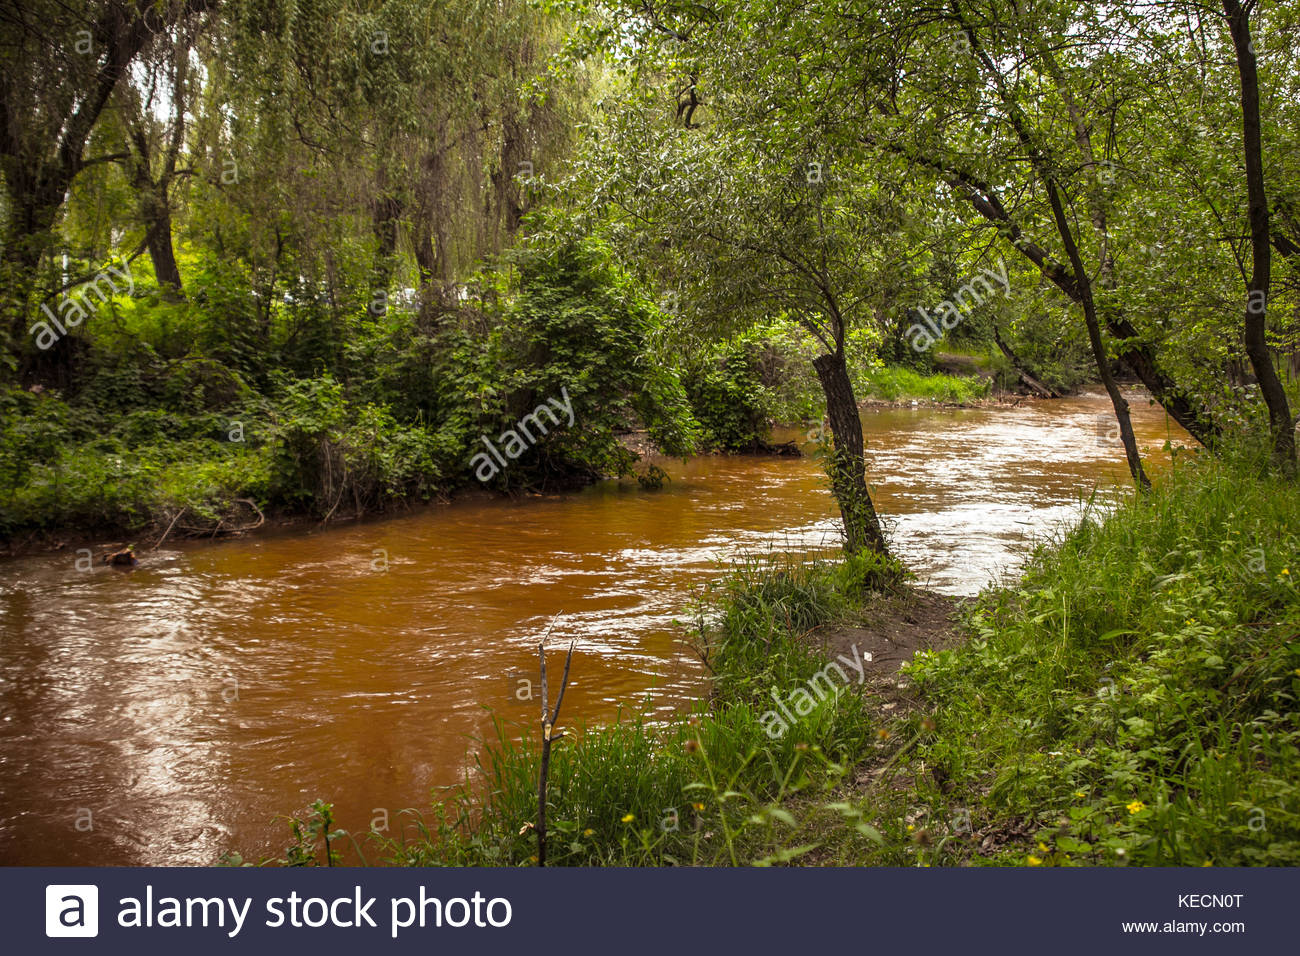 Brown polluted river with nice green shores in the city park - Stock Image